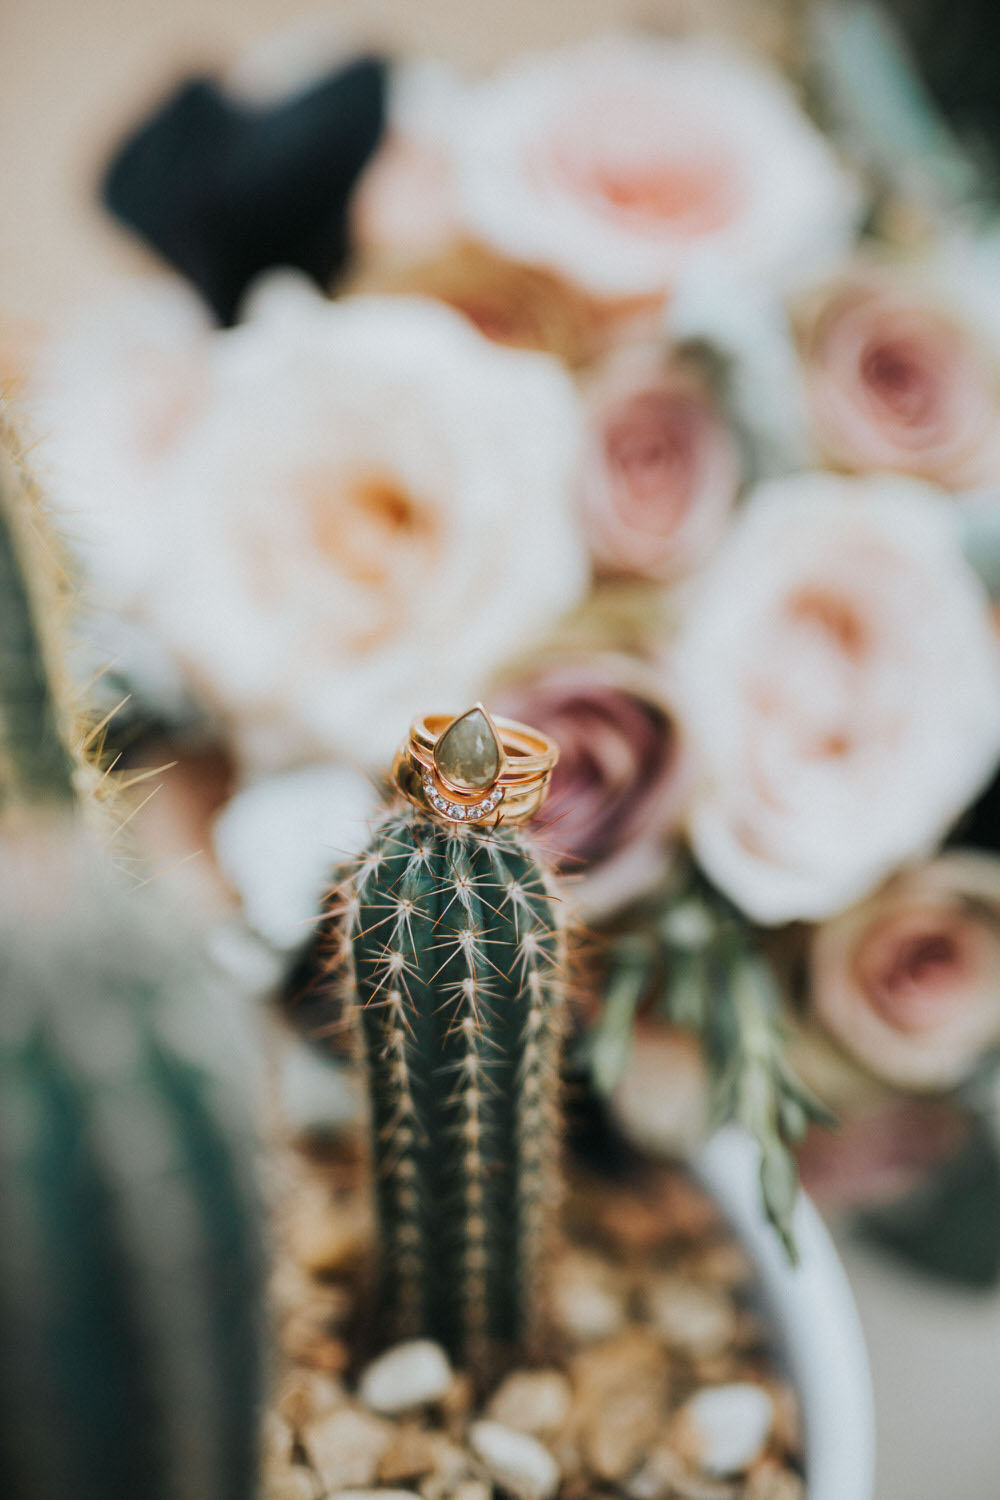 Austin, Austing Wedding Photographer, Diana Ascarrunz Photography, Texas Wedding Photography, Tillery Place Wedding, Vegan Nom Wedding, Vegan Wedding, Wedding Photography